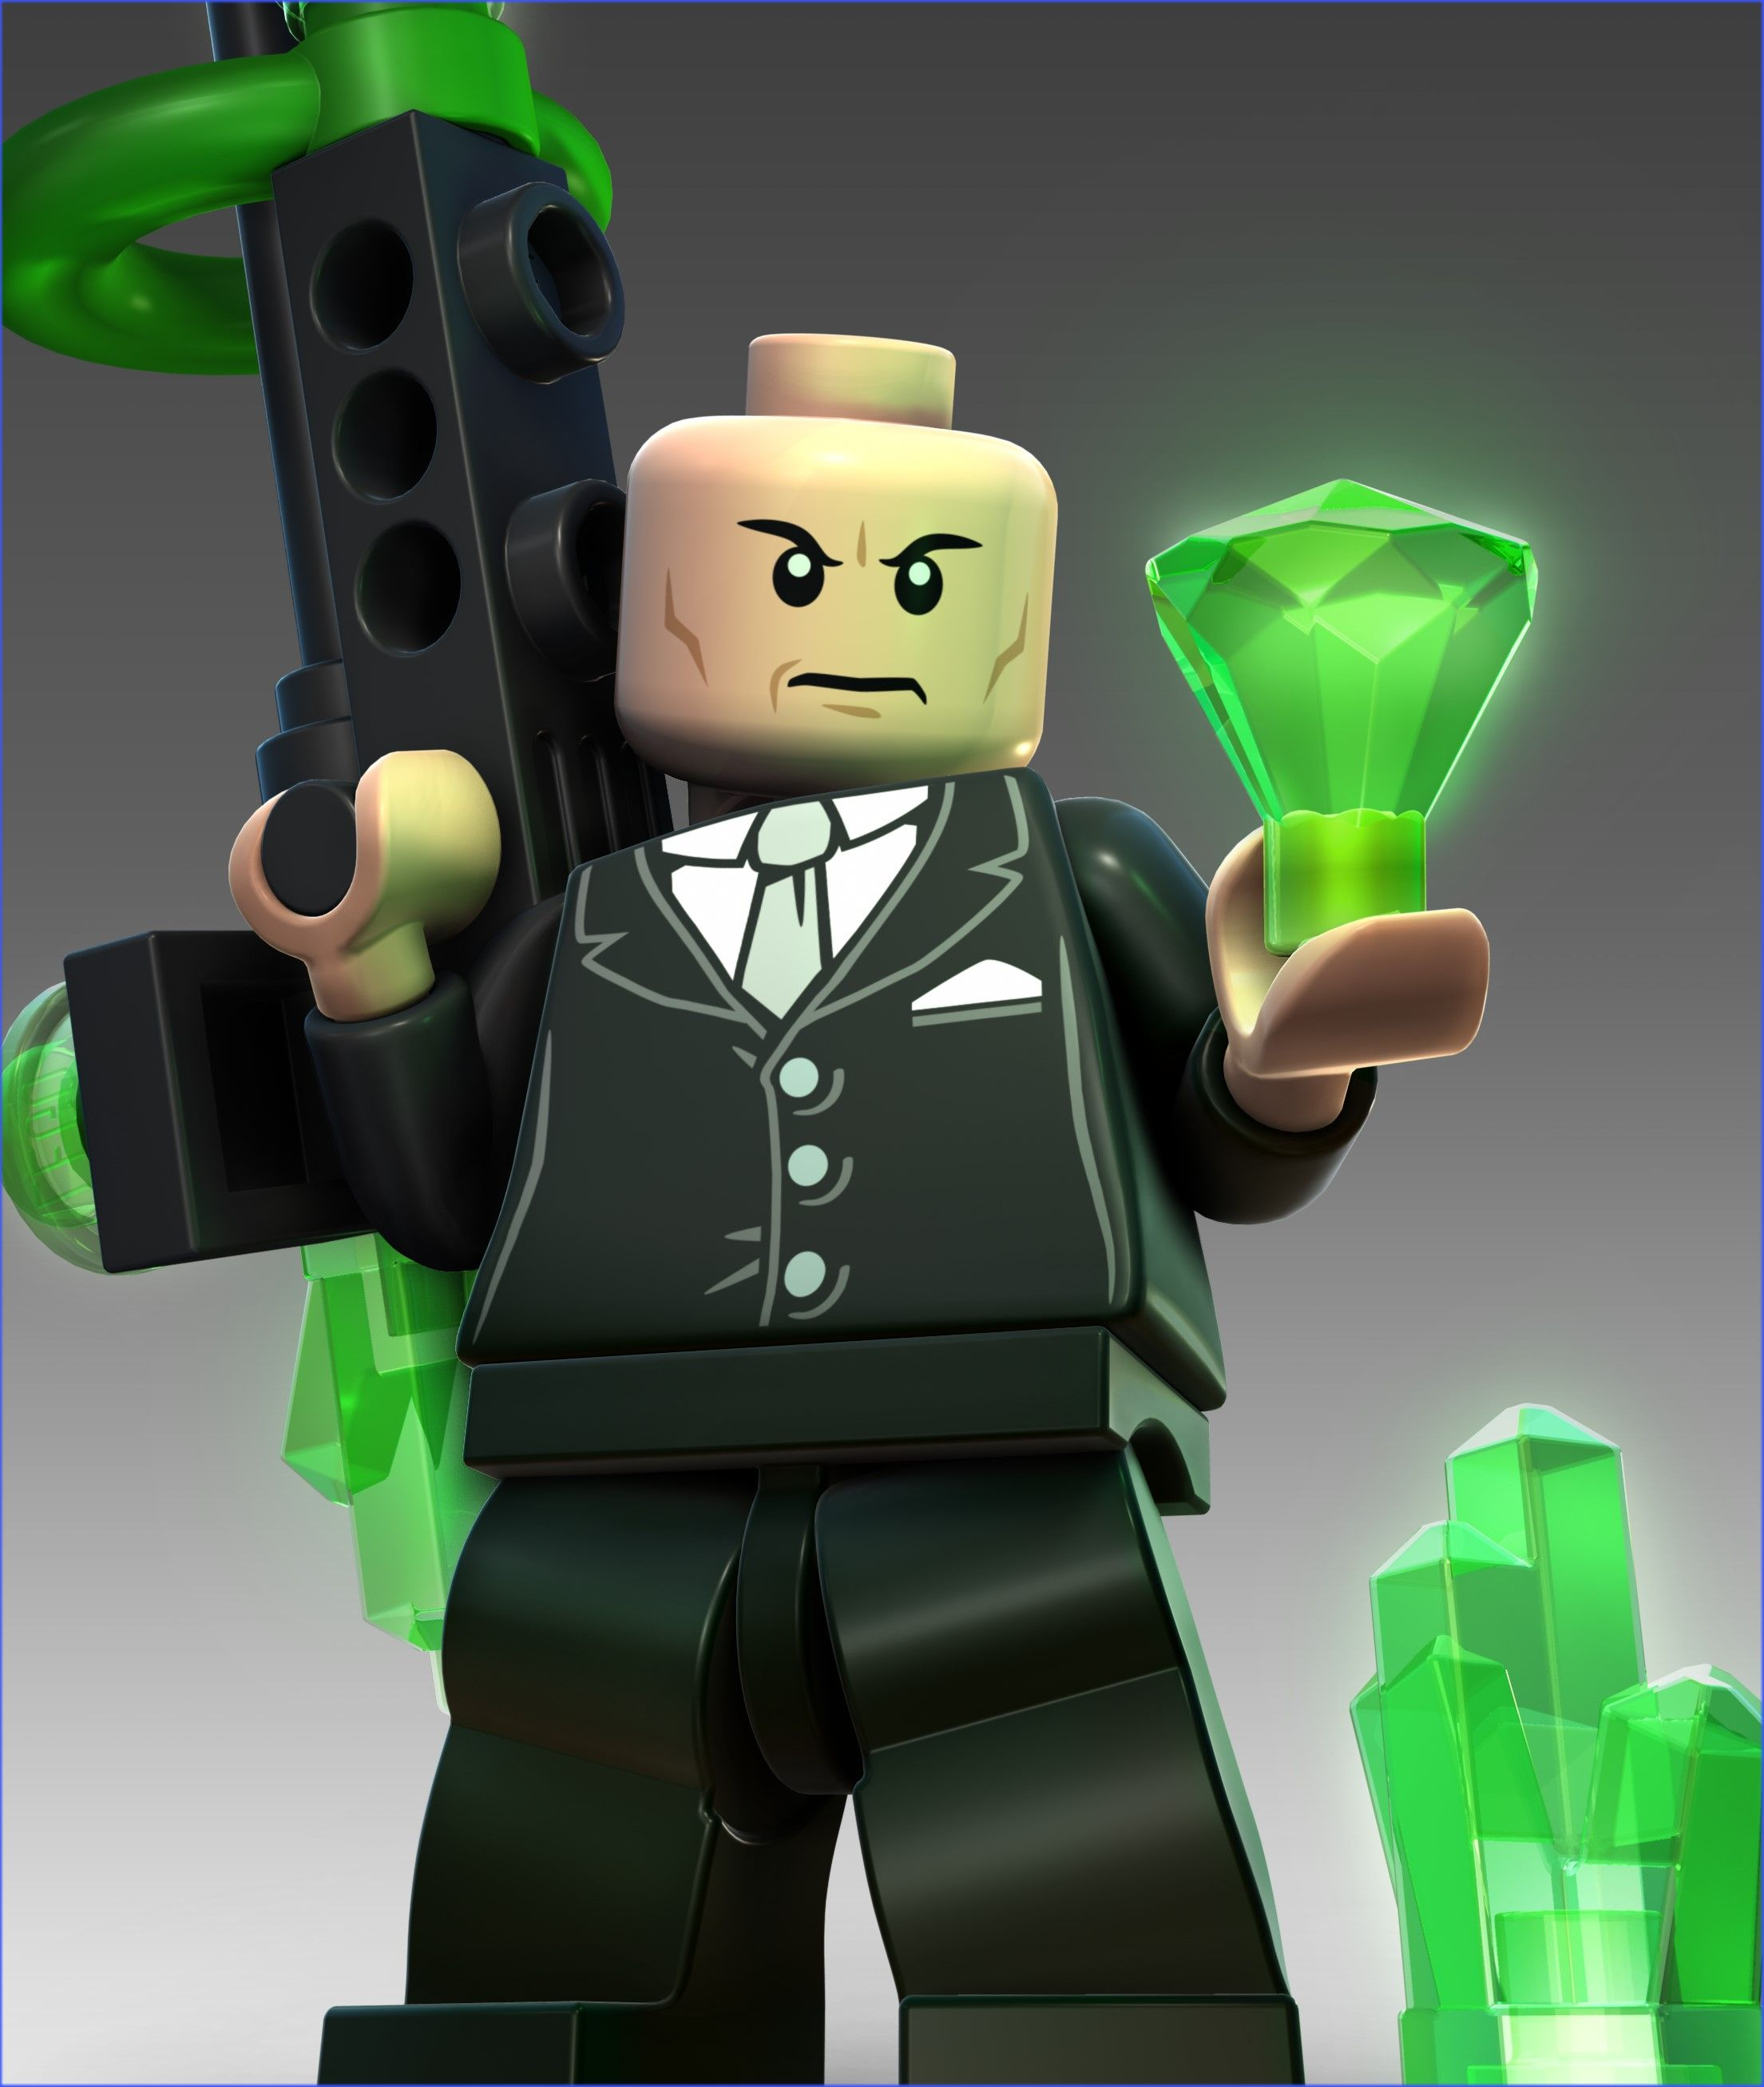 Lex Luthor Lego See Best Of Photos Of The Superman Villain Lego Batman Lego Wallpaper Lego Batman Wallpaper